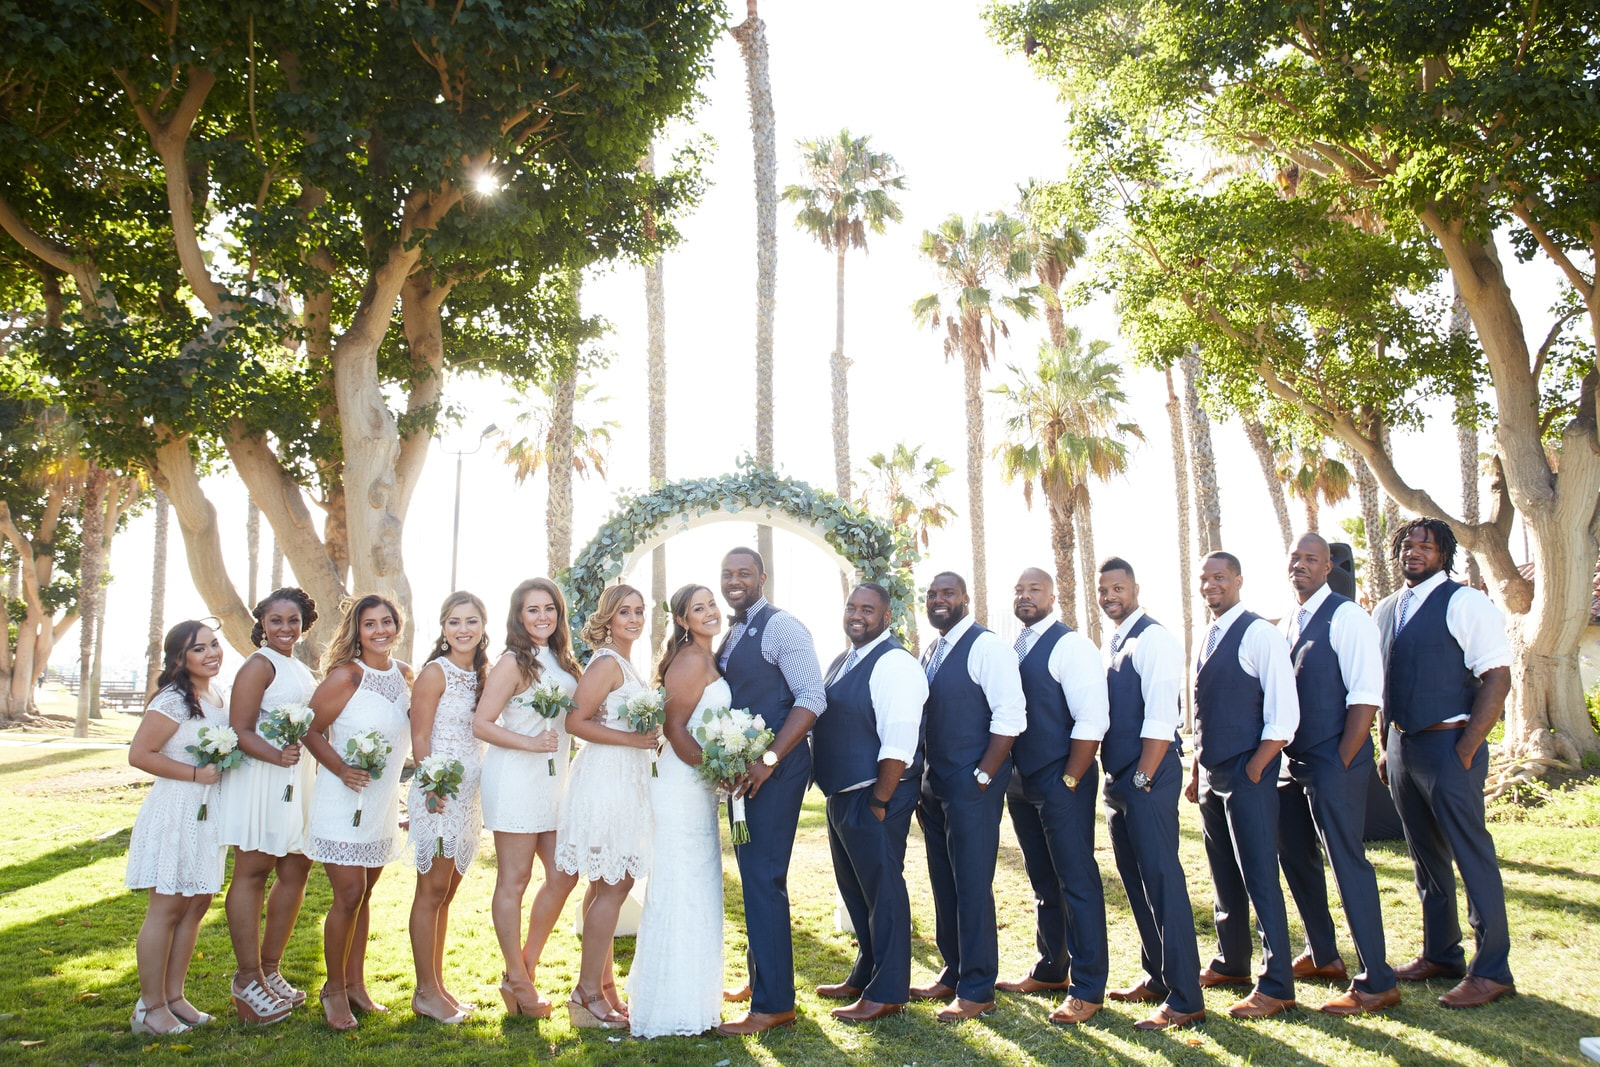 perfect picture of entire wedding party worth every dollar of wedding photography package